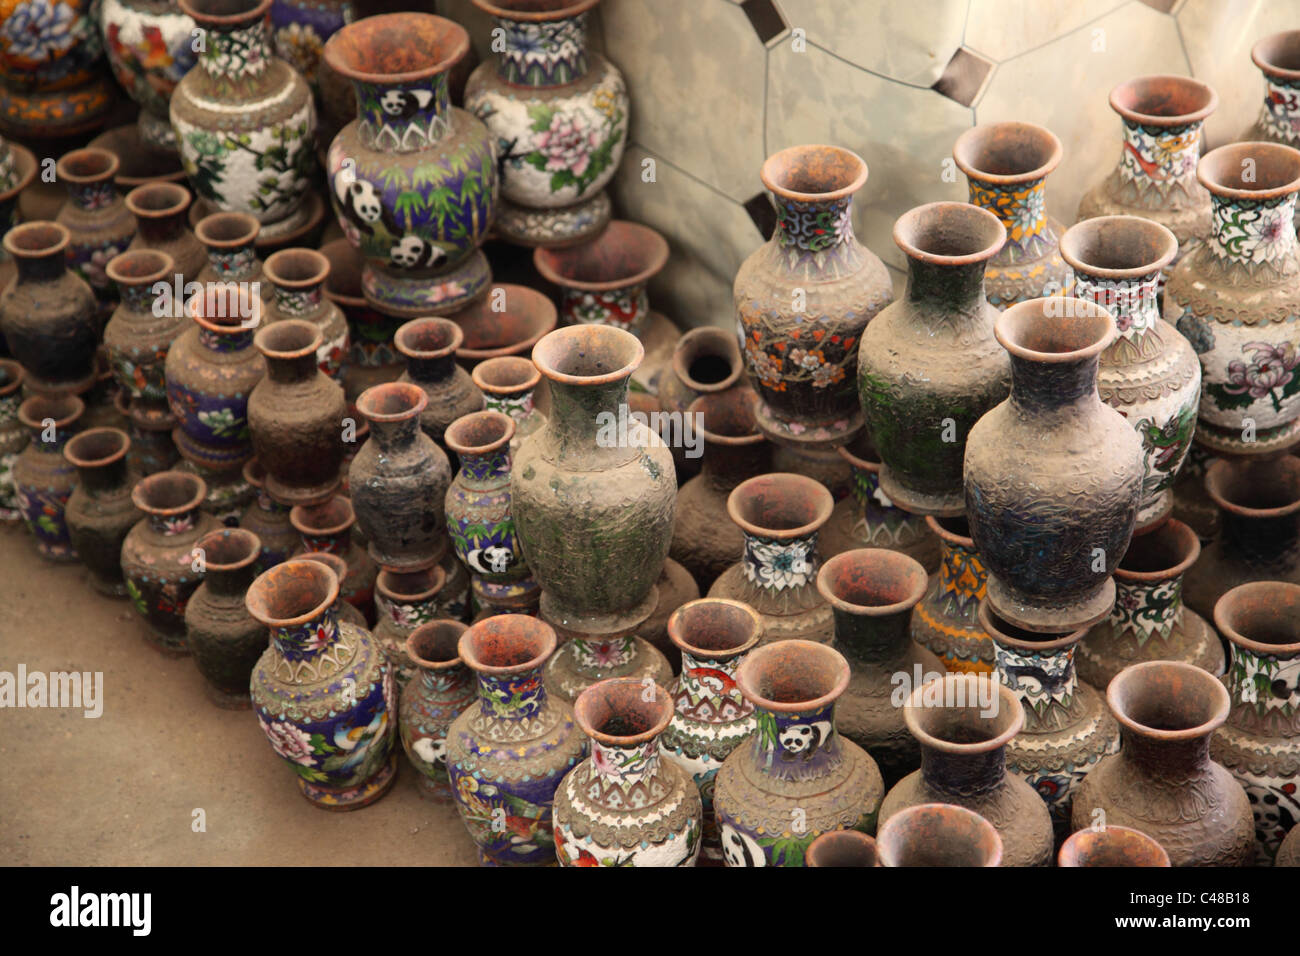 Vases in a cloisonne ware factory Beijing, China - Stock Image